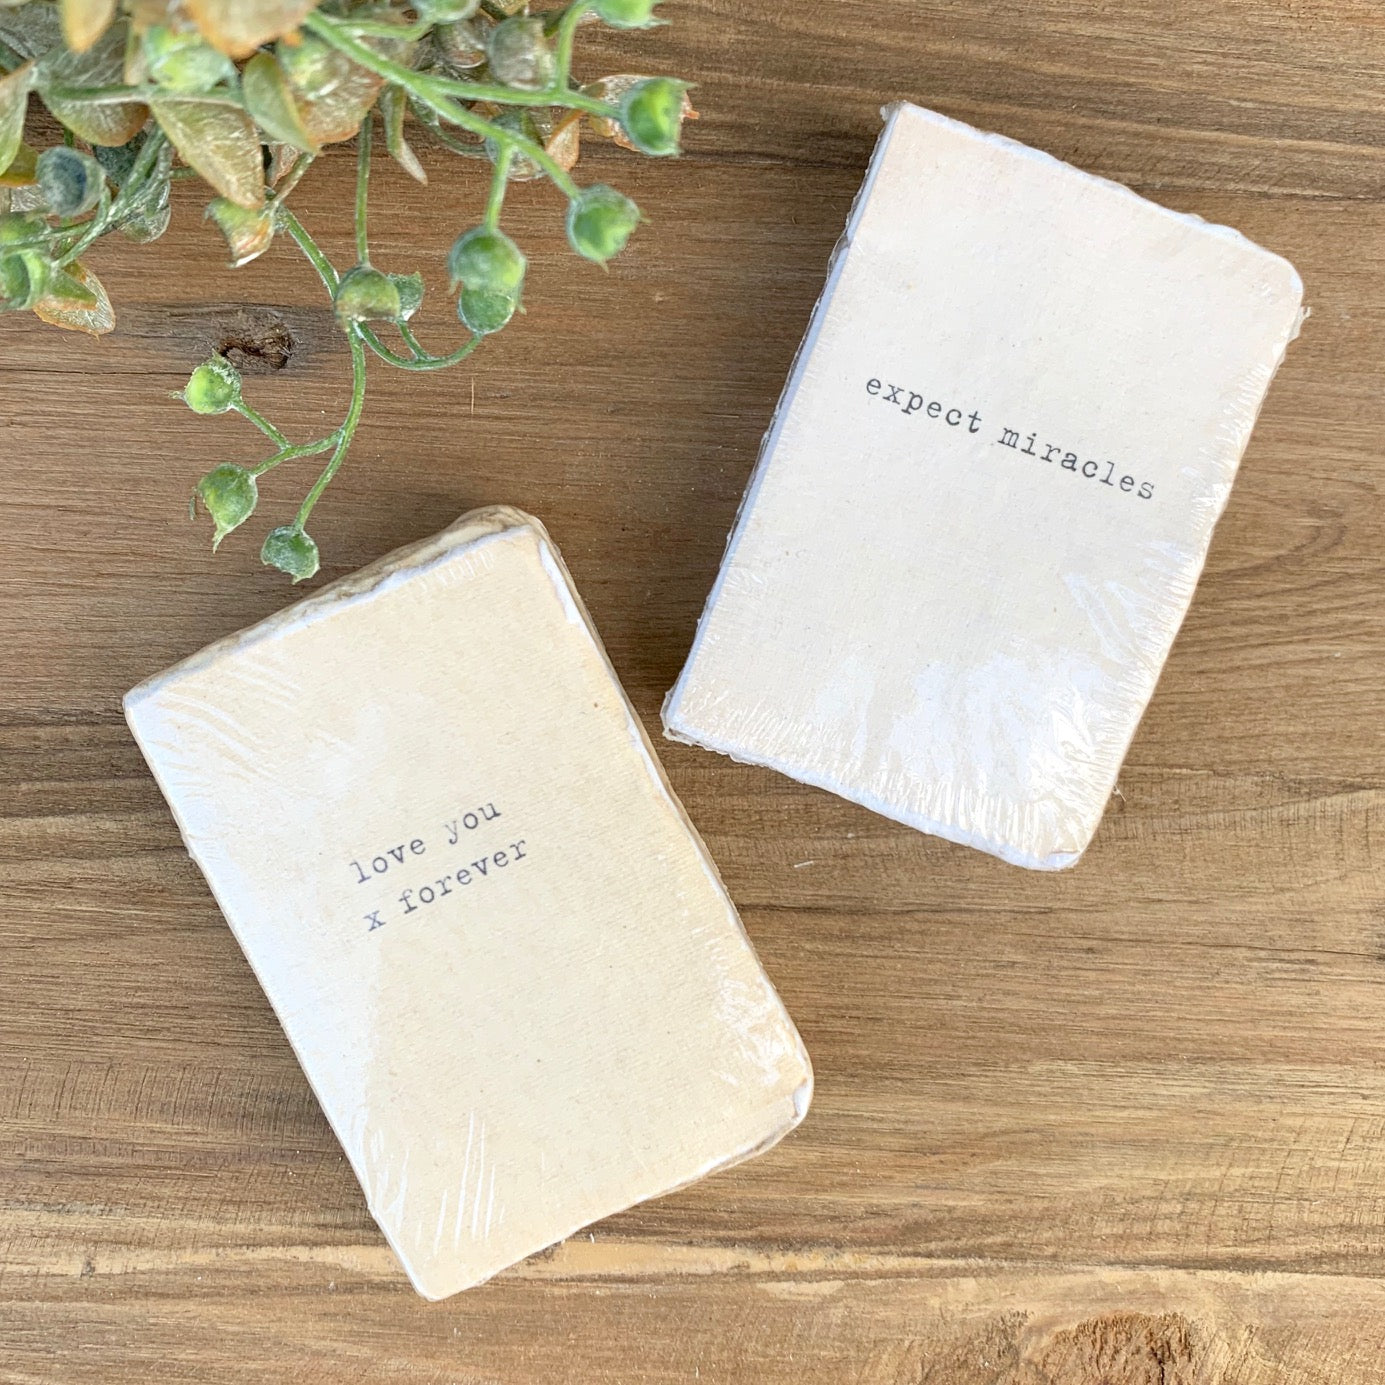 Mini Deckle Edge Notebooks